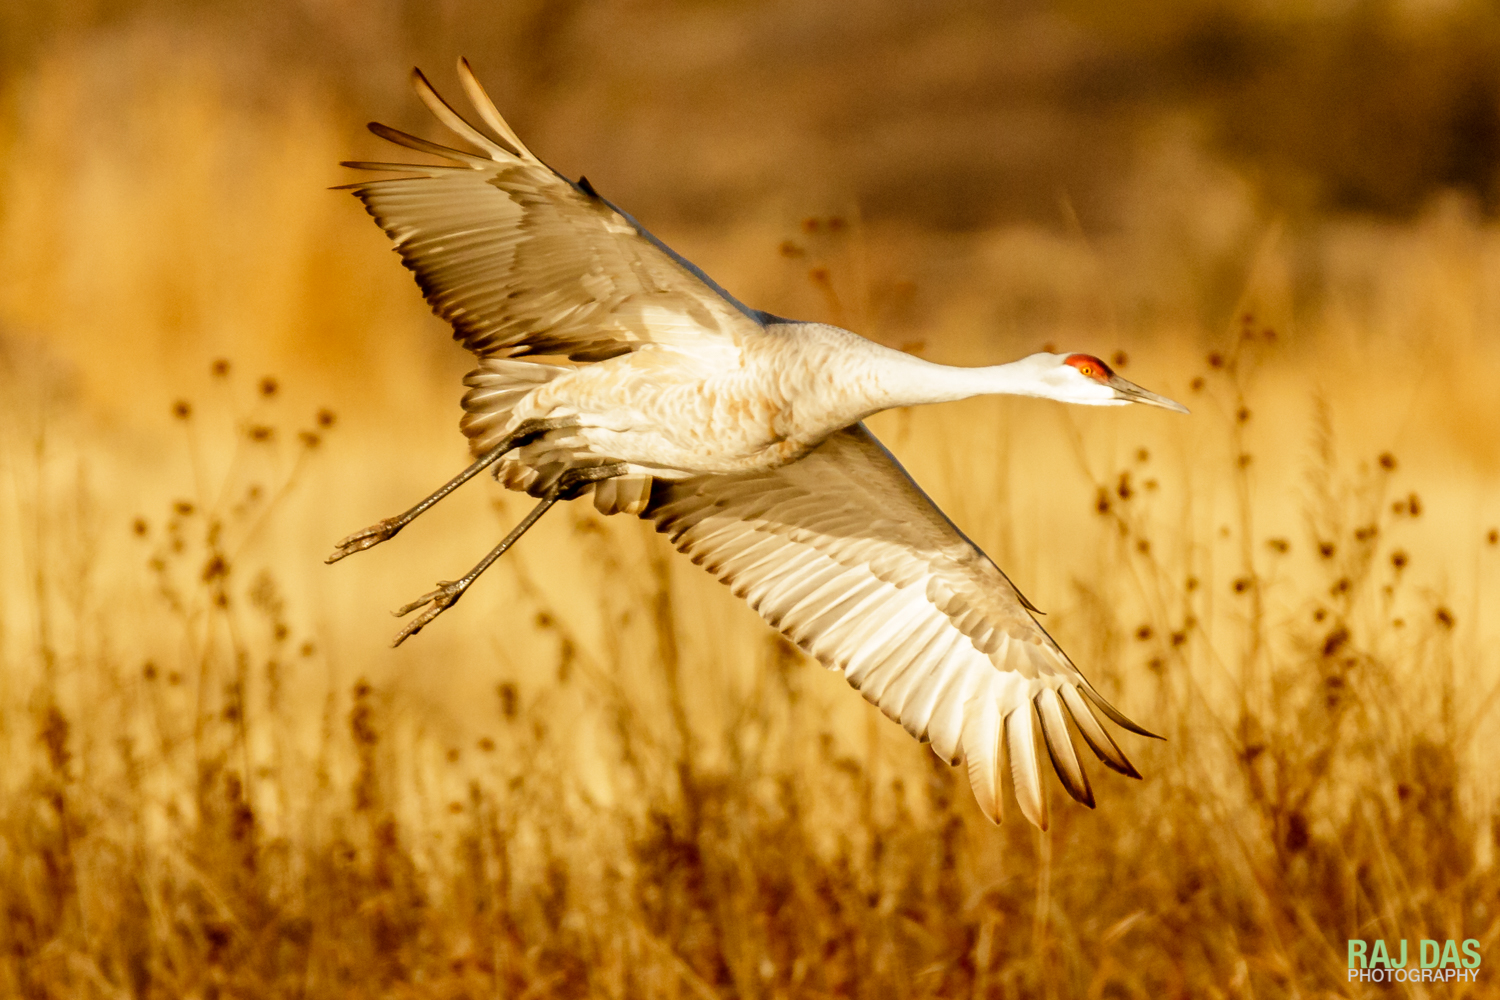 A greater sandhill crane landing to roost for the night at Bosque del Apache NWR